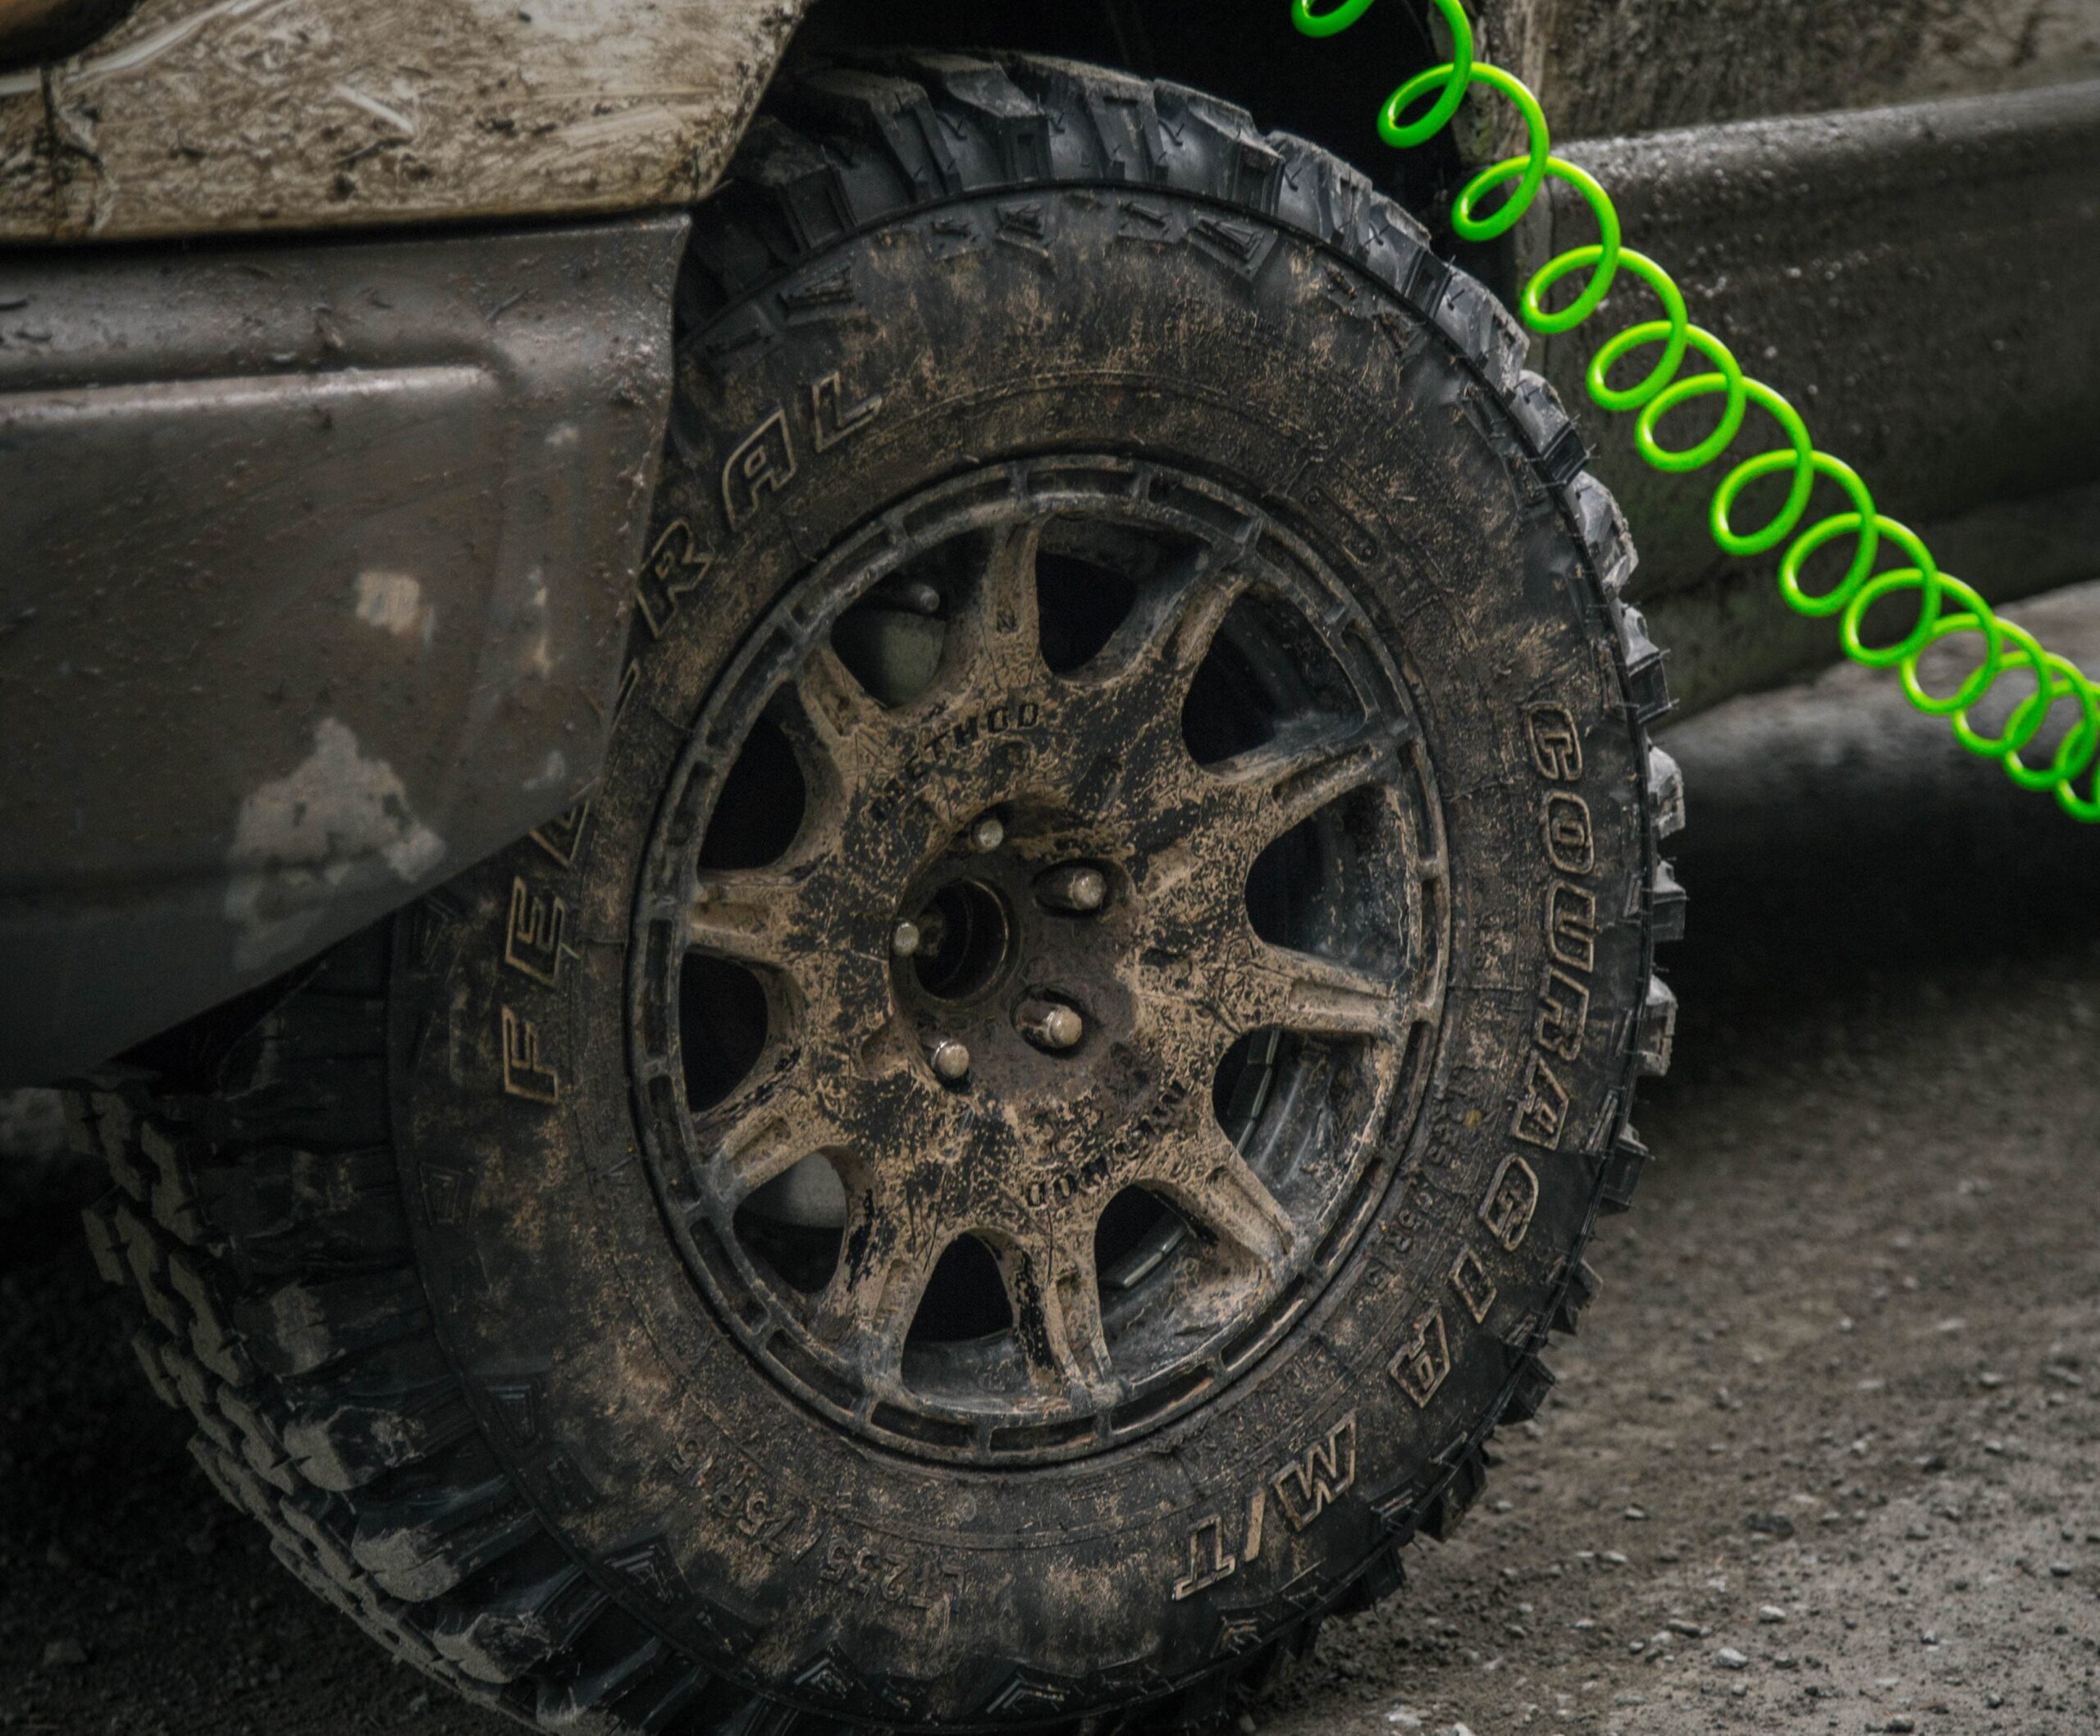 Federal Couragia MT mud tires on a Subaru Forester